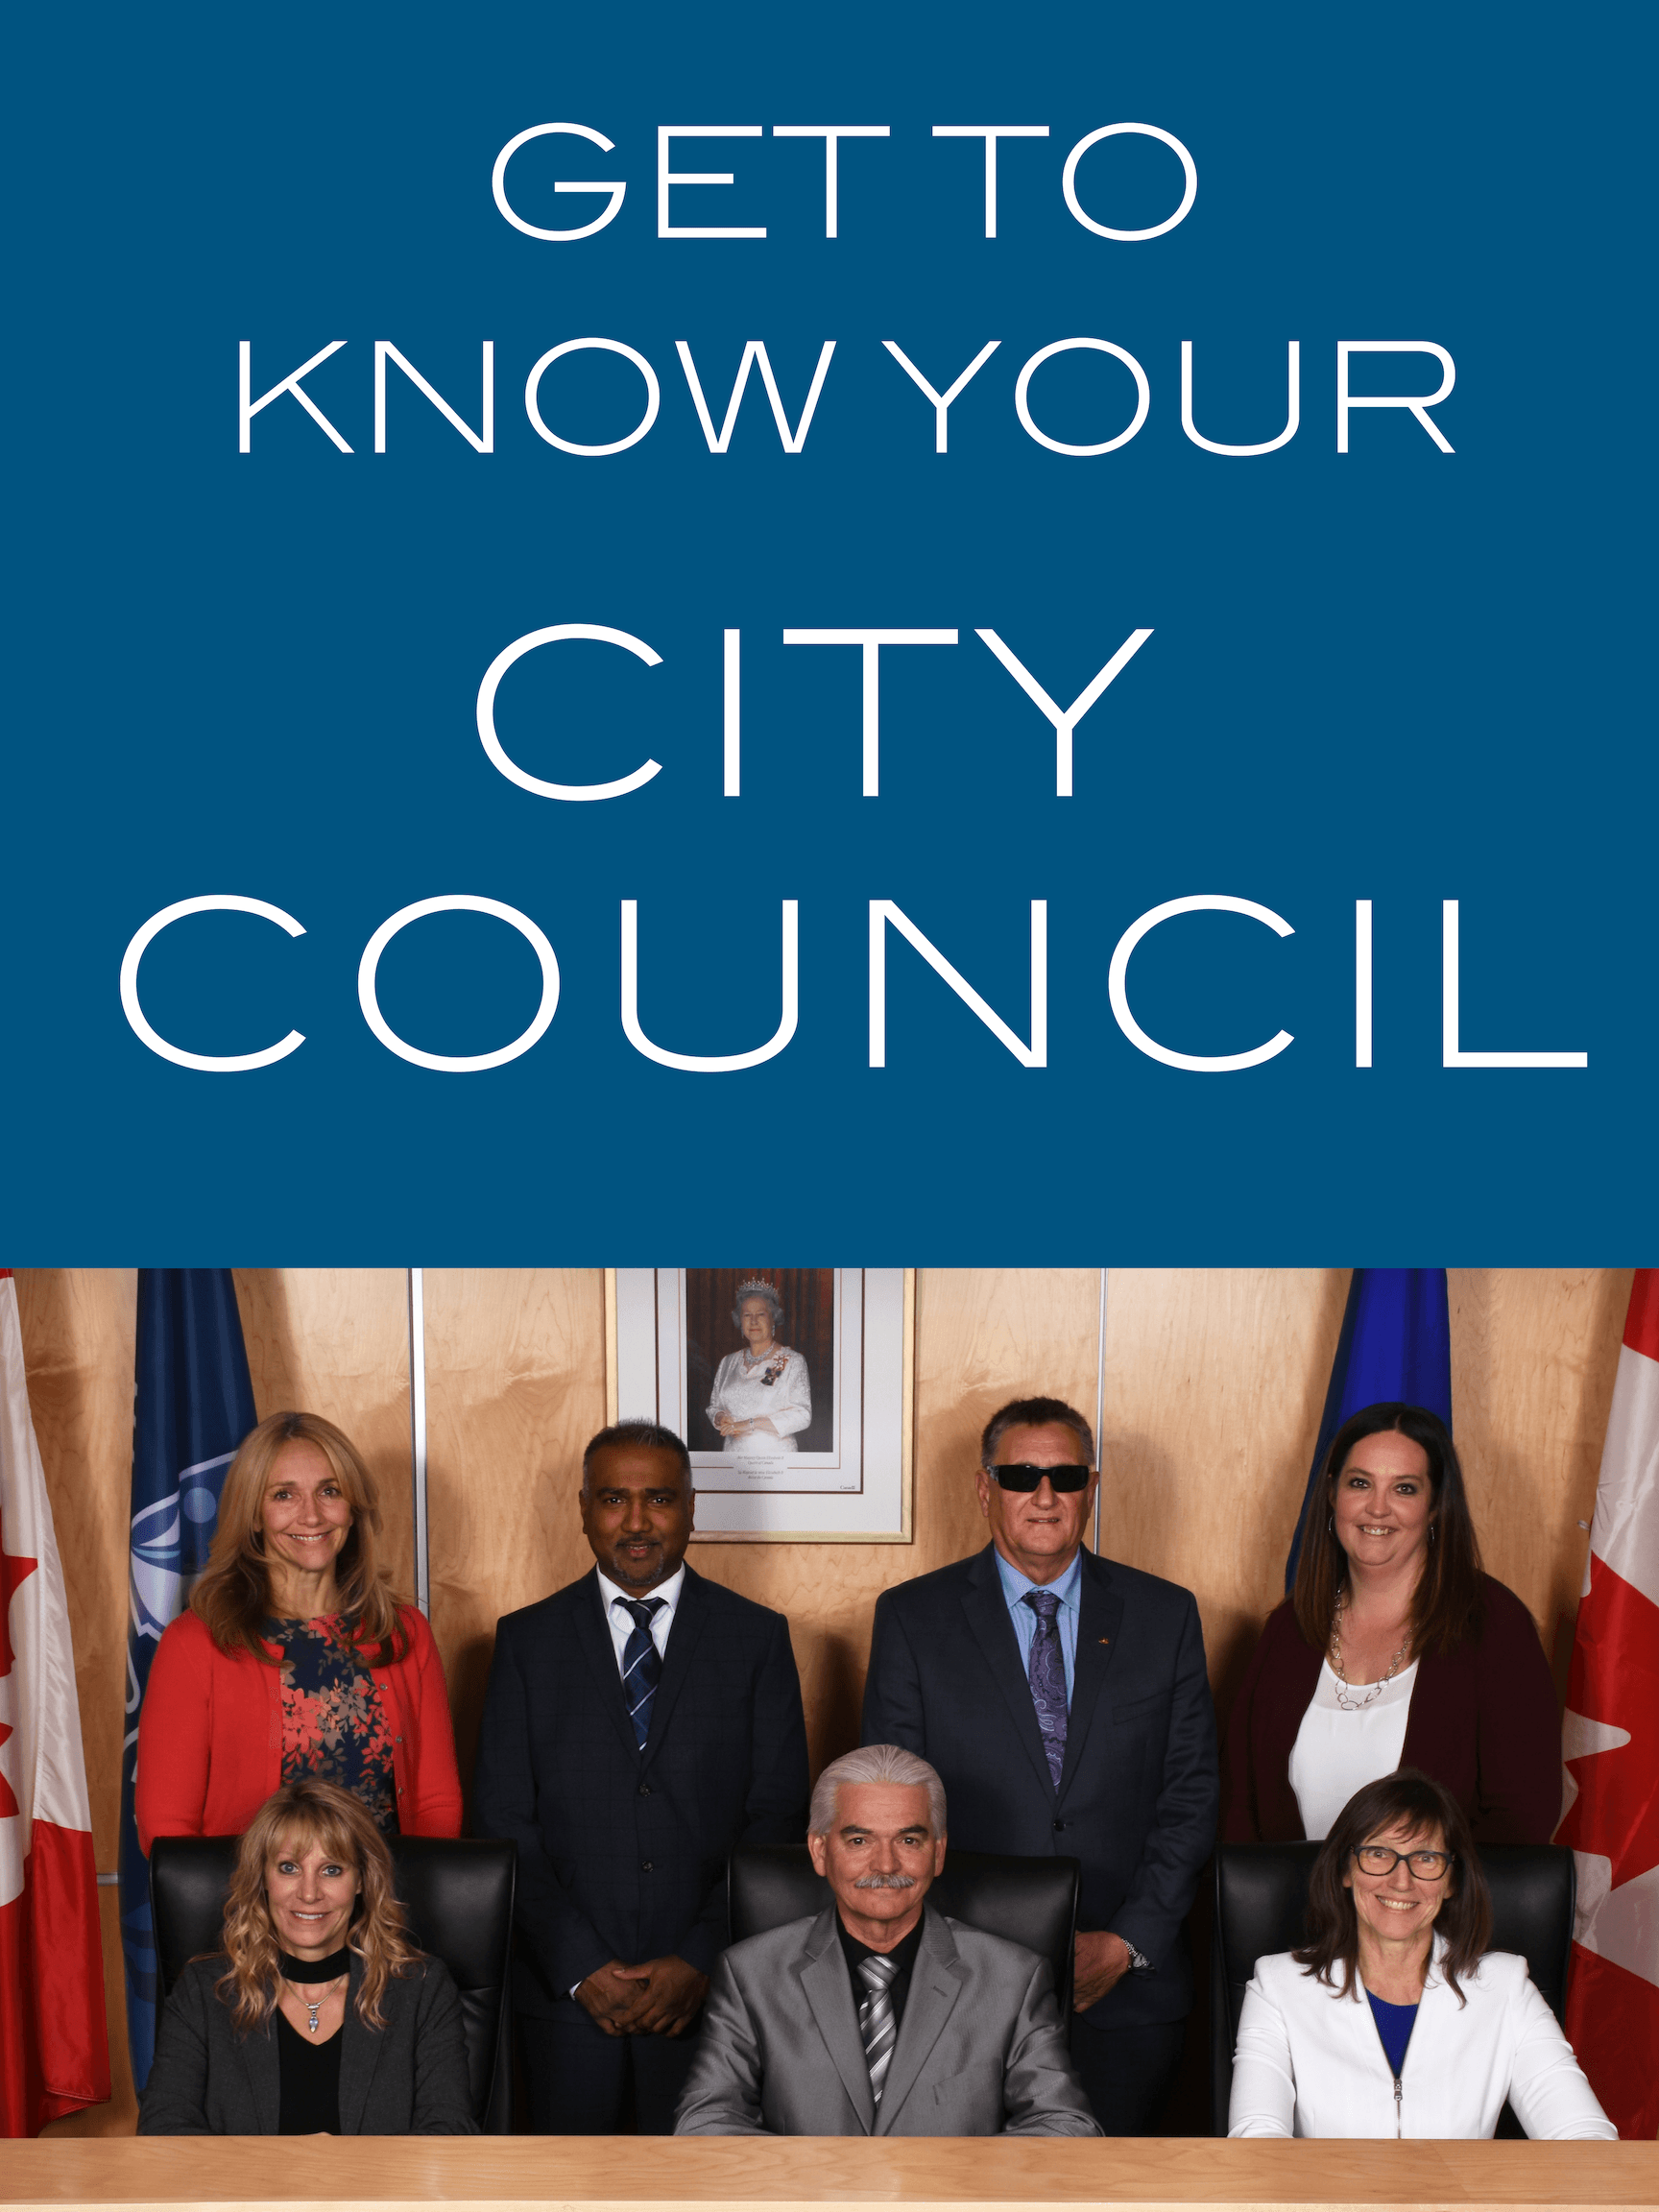 Get to know Council